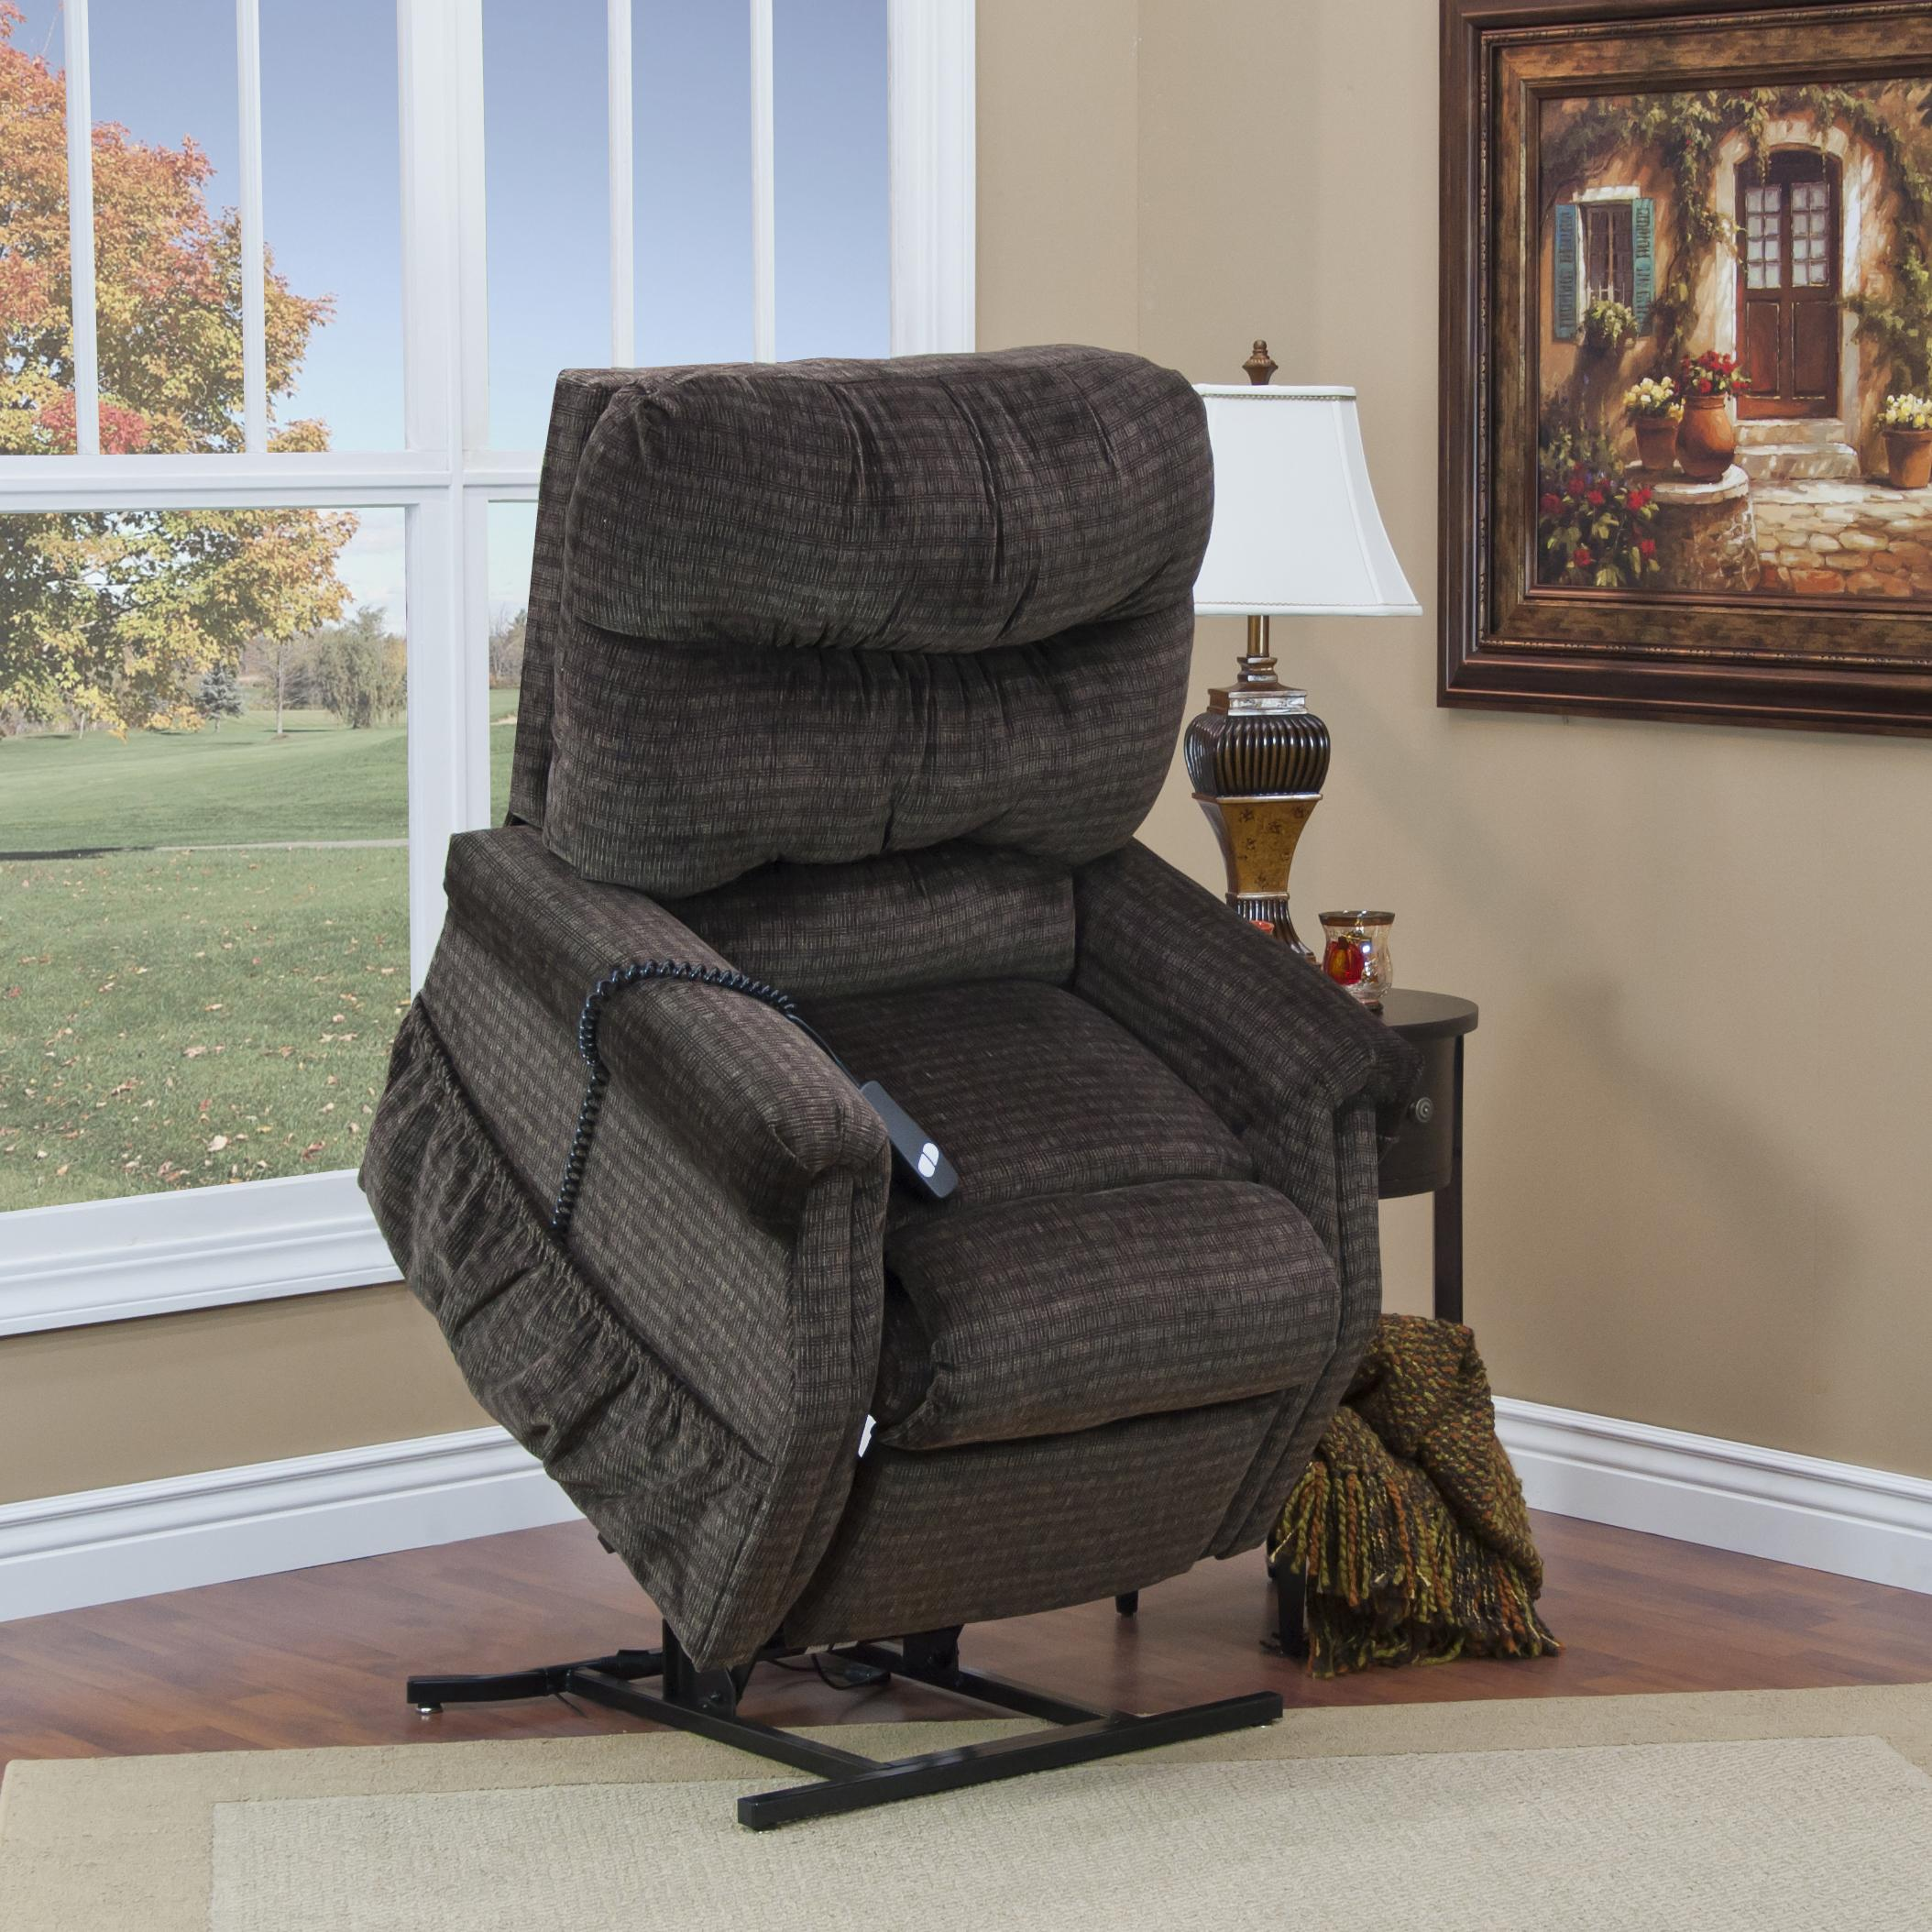 handicap lift chair recliner revolving manufacturers in coimbatore med and mobility 1193 casual 3 way